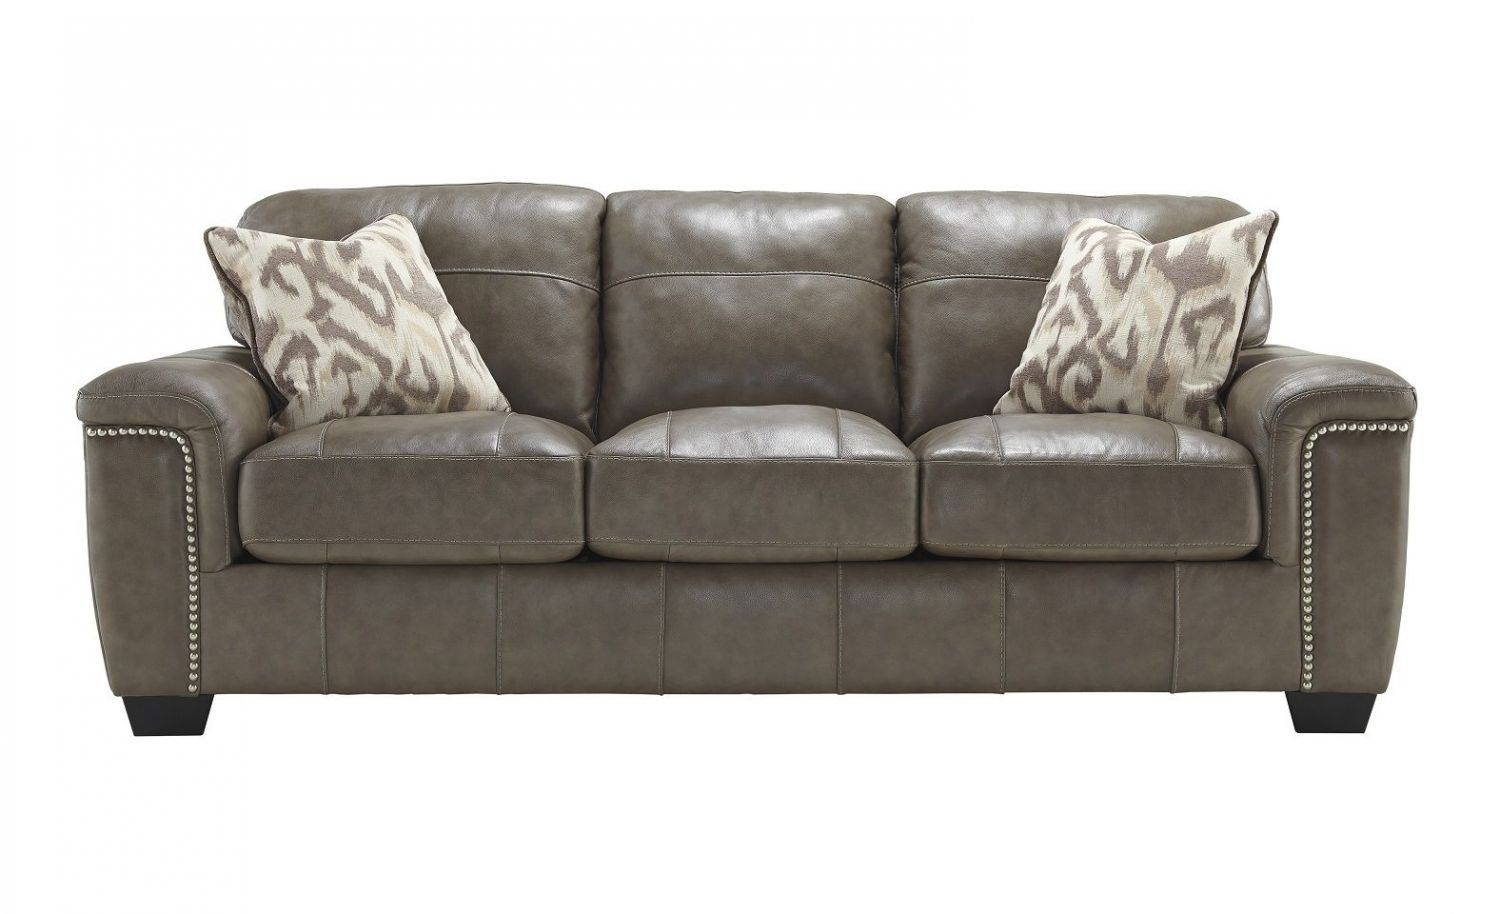 Donnell Granite Leather Sofa With